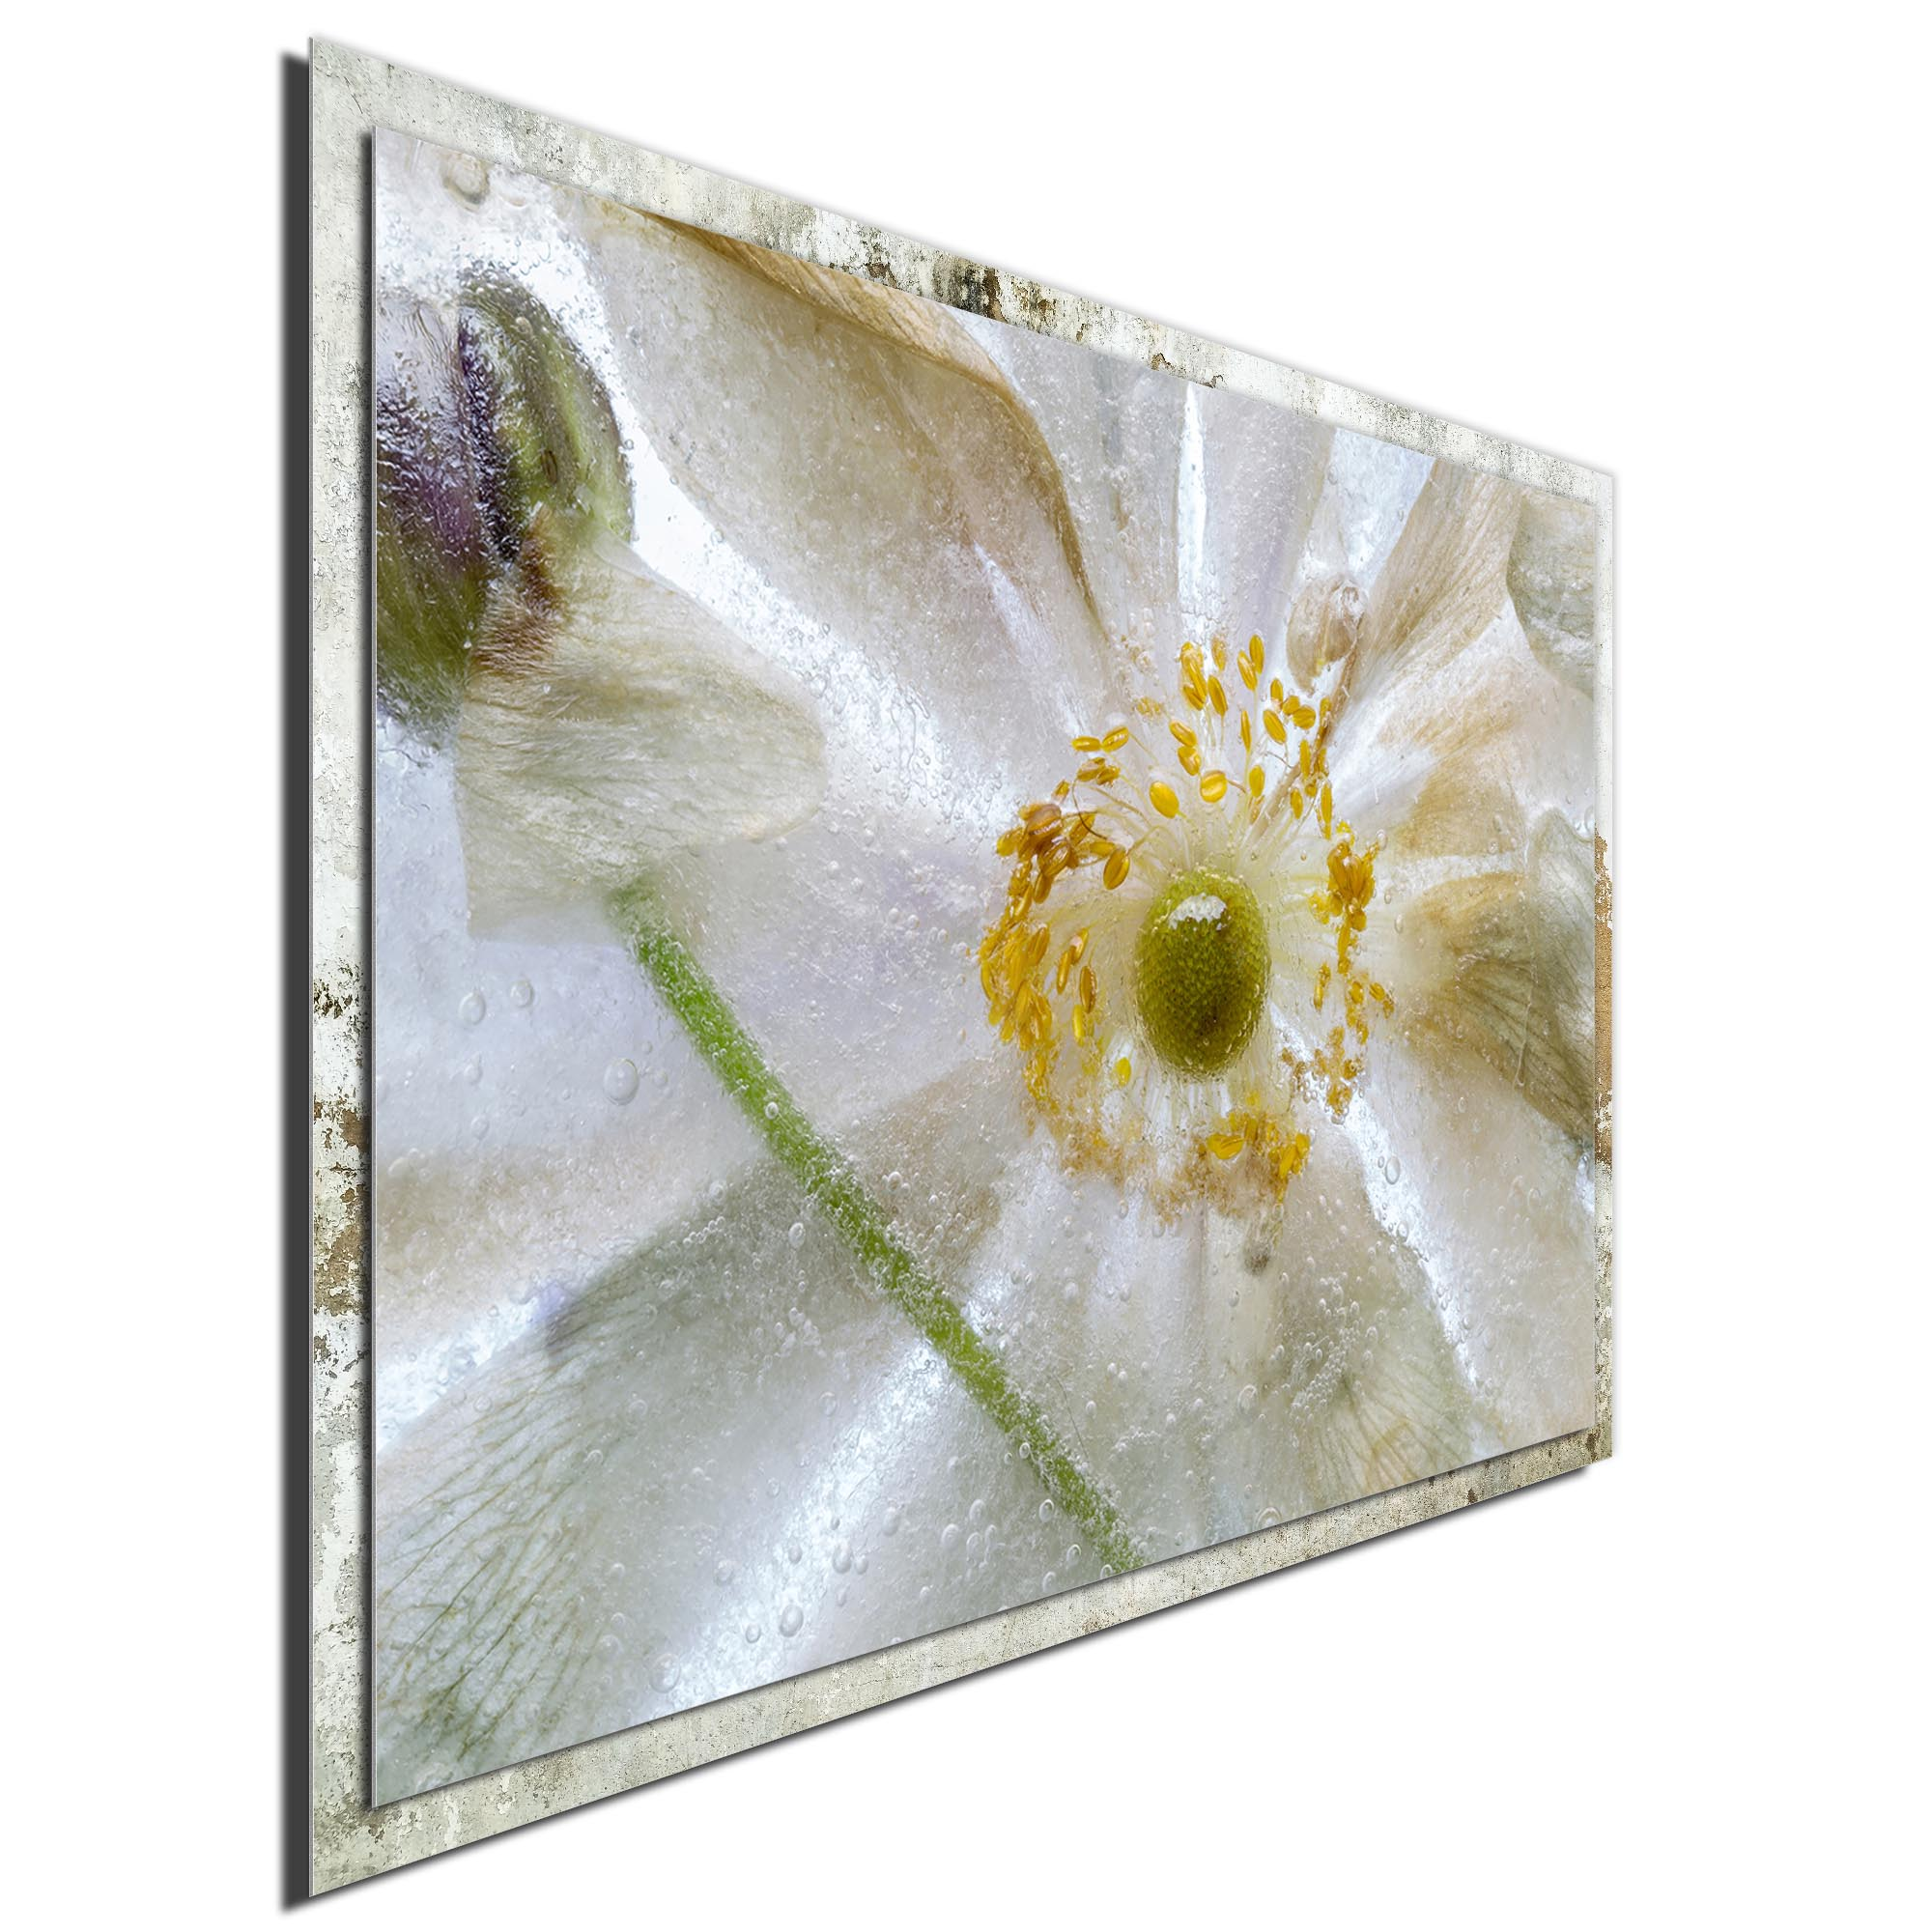 Floral Freeze by Mandy Disher - Modern Farmhouse Floral on Metal - Image 2